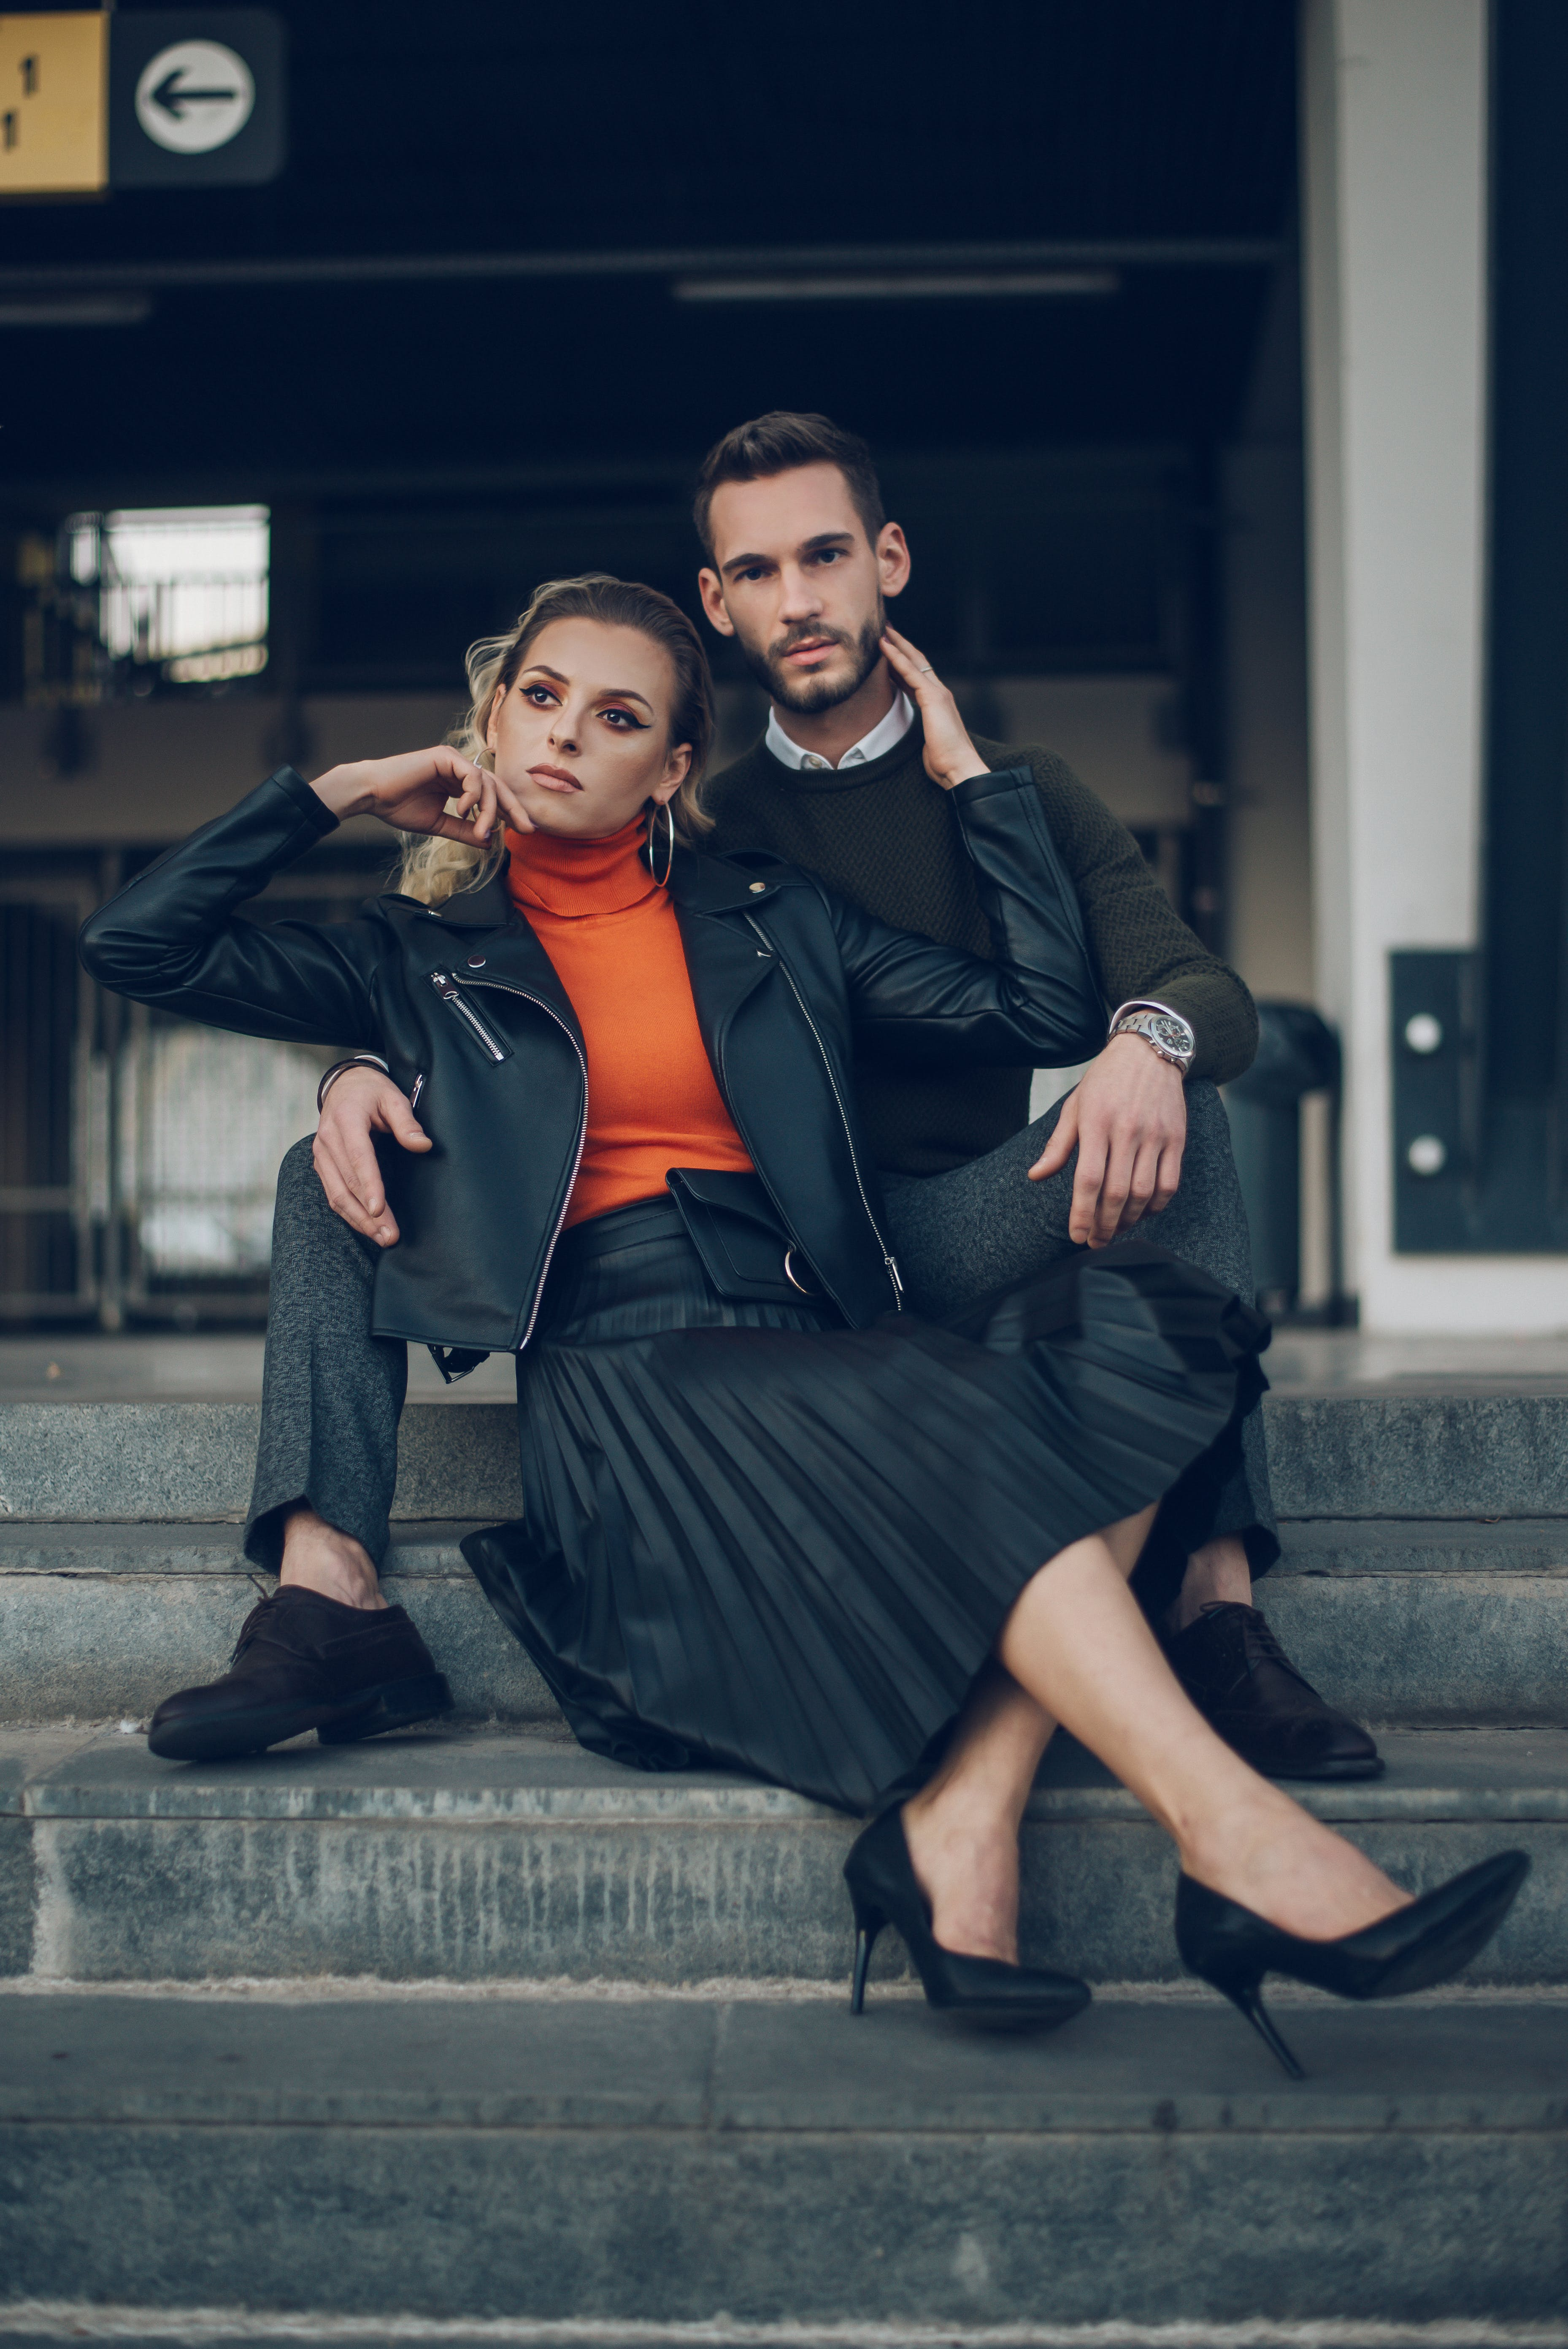 Selective Focus Photography of Woman Sitting on Concrete Stair Leaning on Man